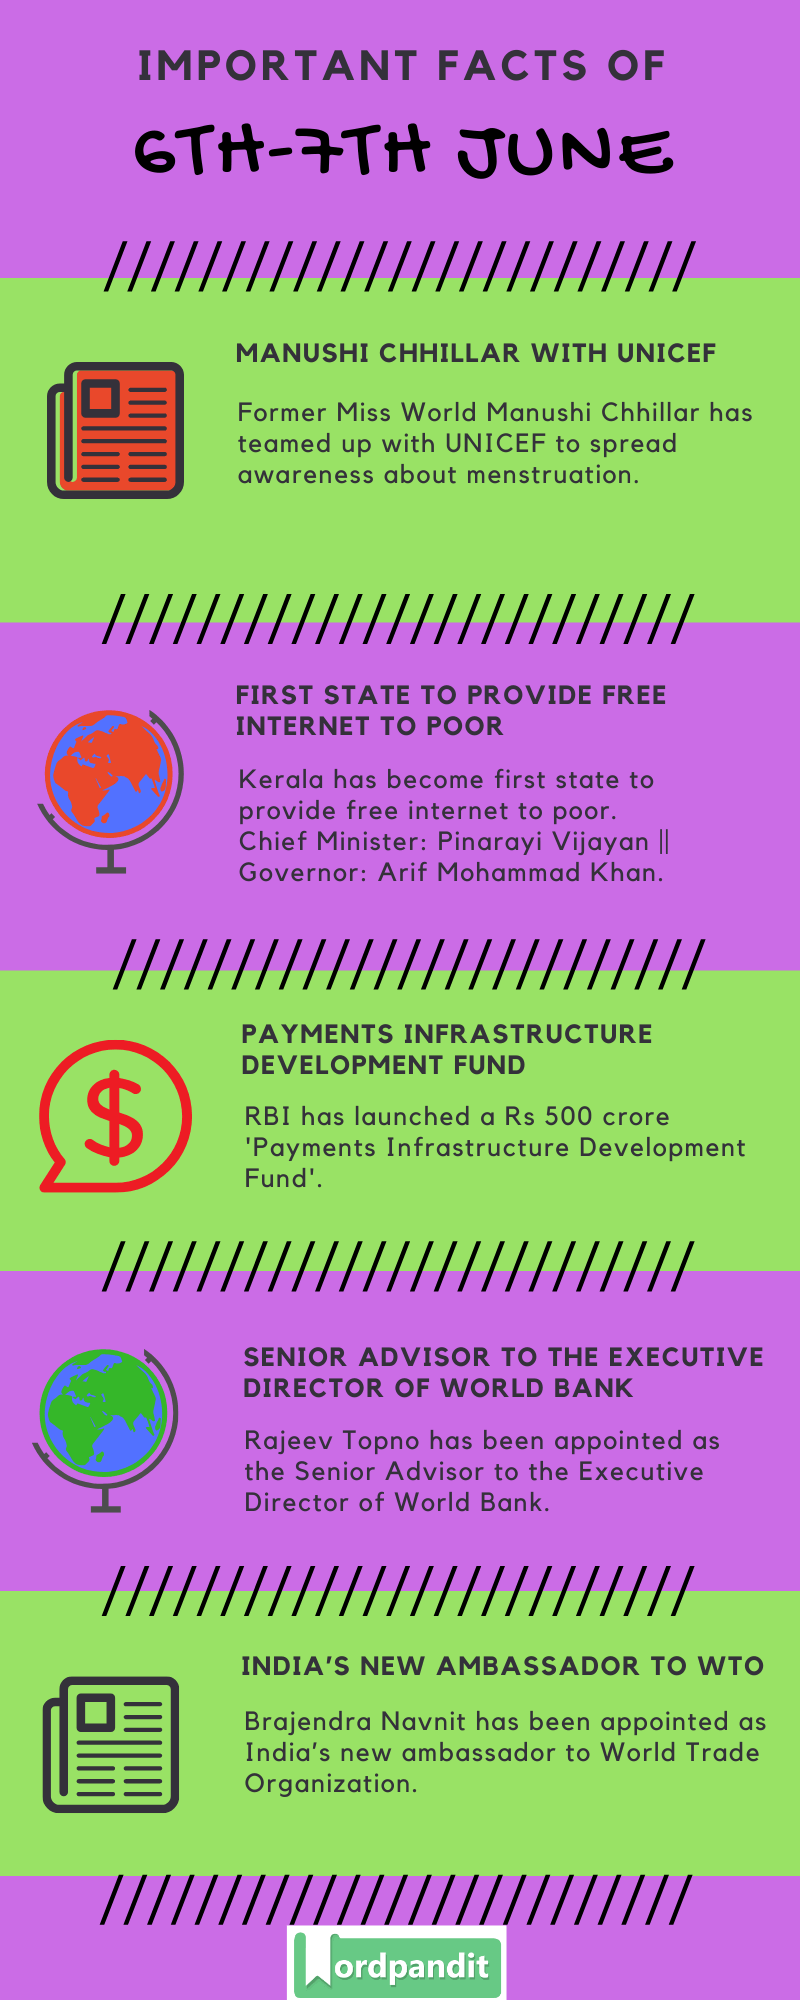 Daily Current Affairs 6th-7th June 2020 Current Affairs Quiz 6th-7th June 2020 Current Affairs Infographic